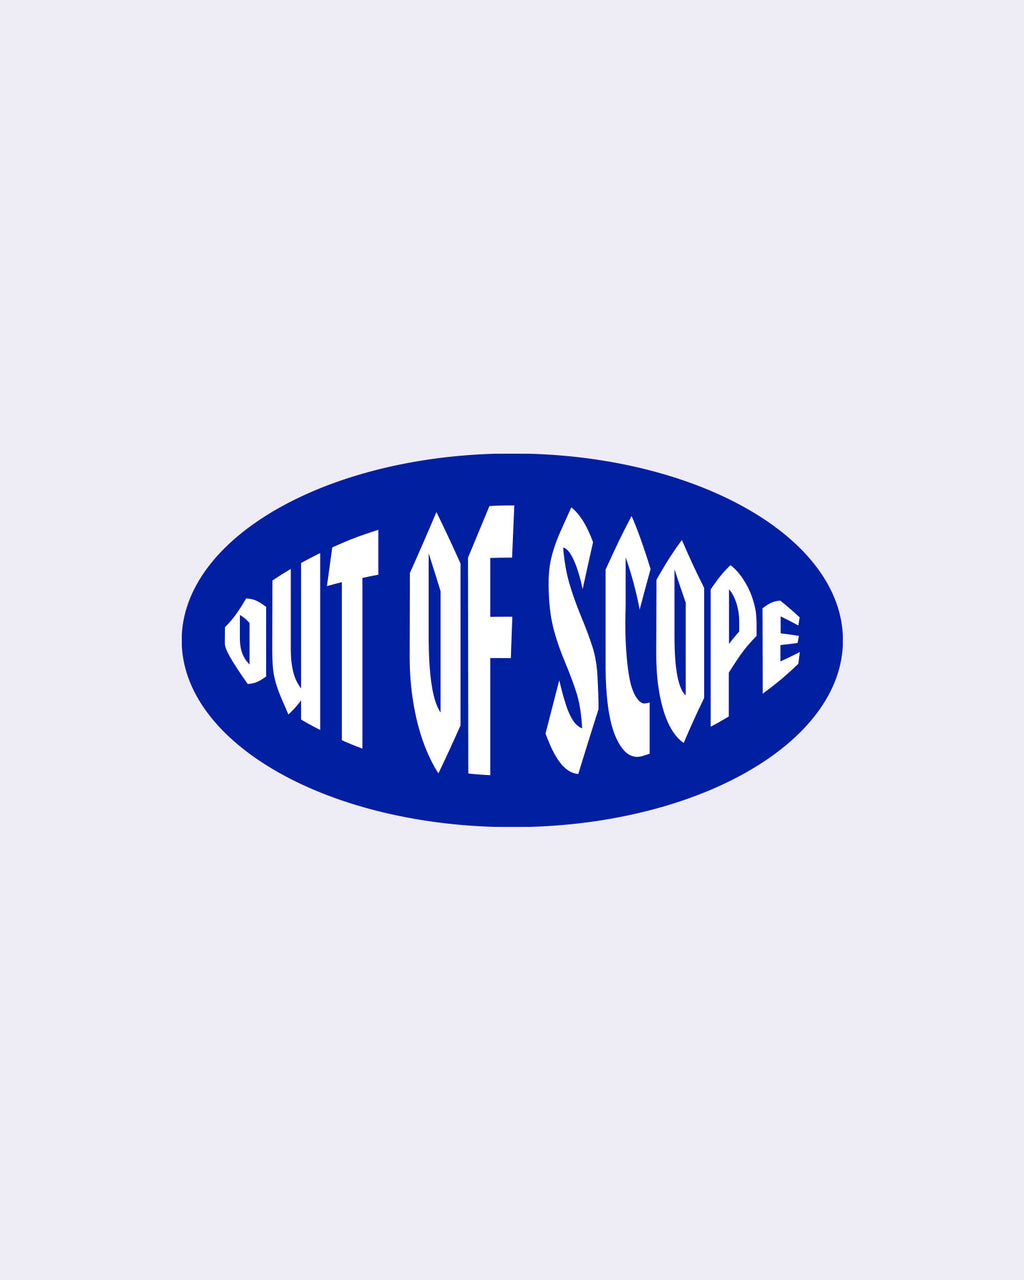 Out of Scope Sticker